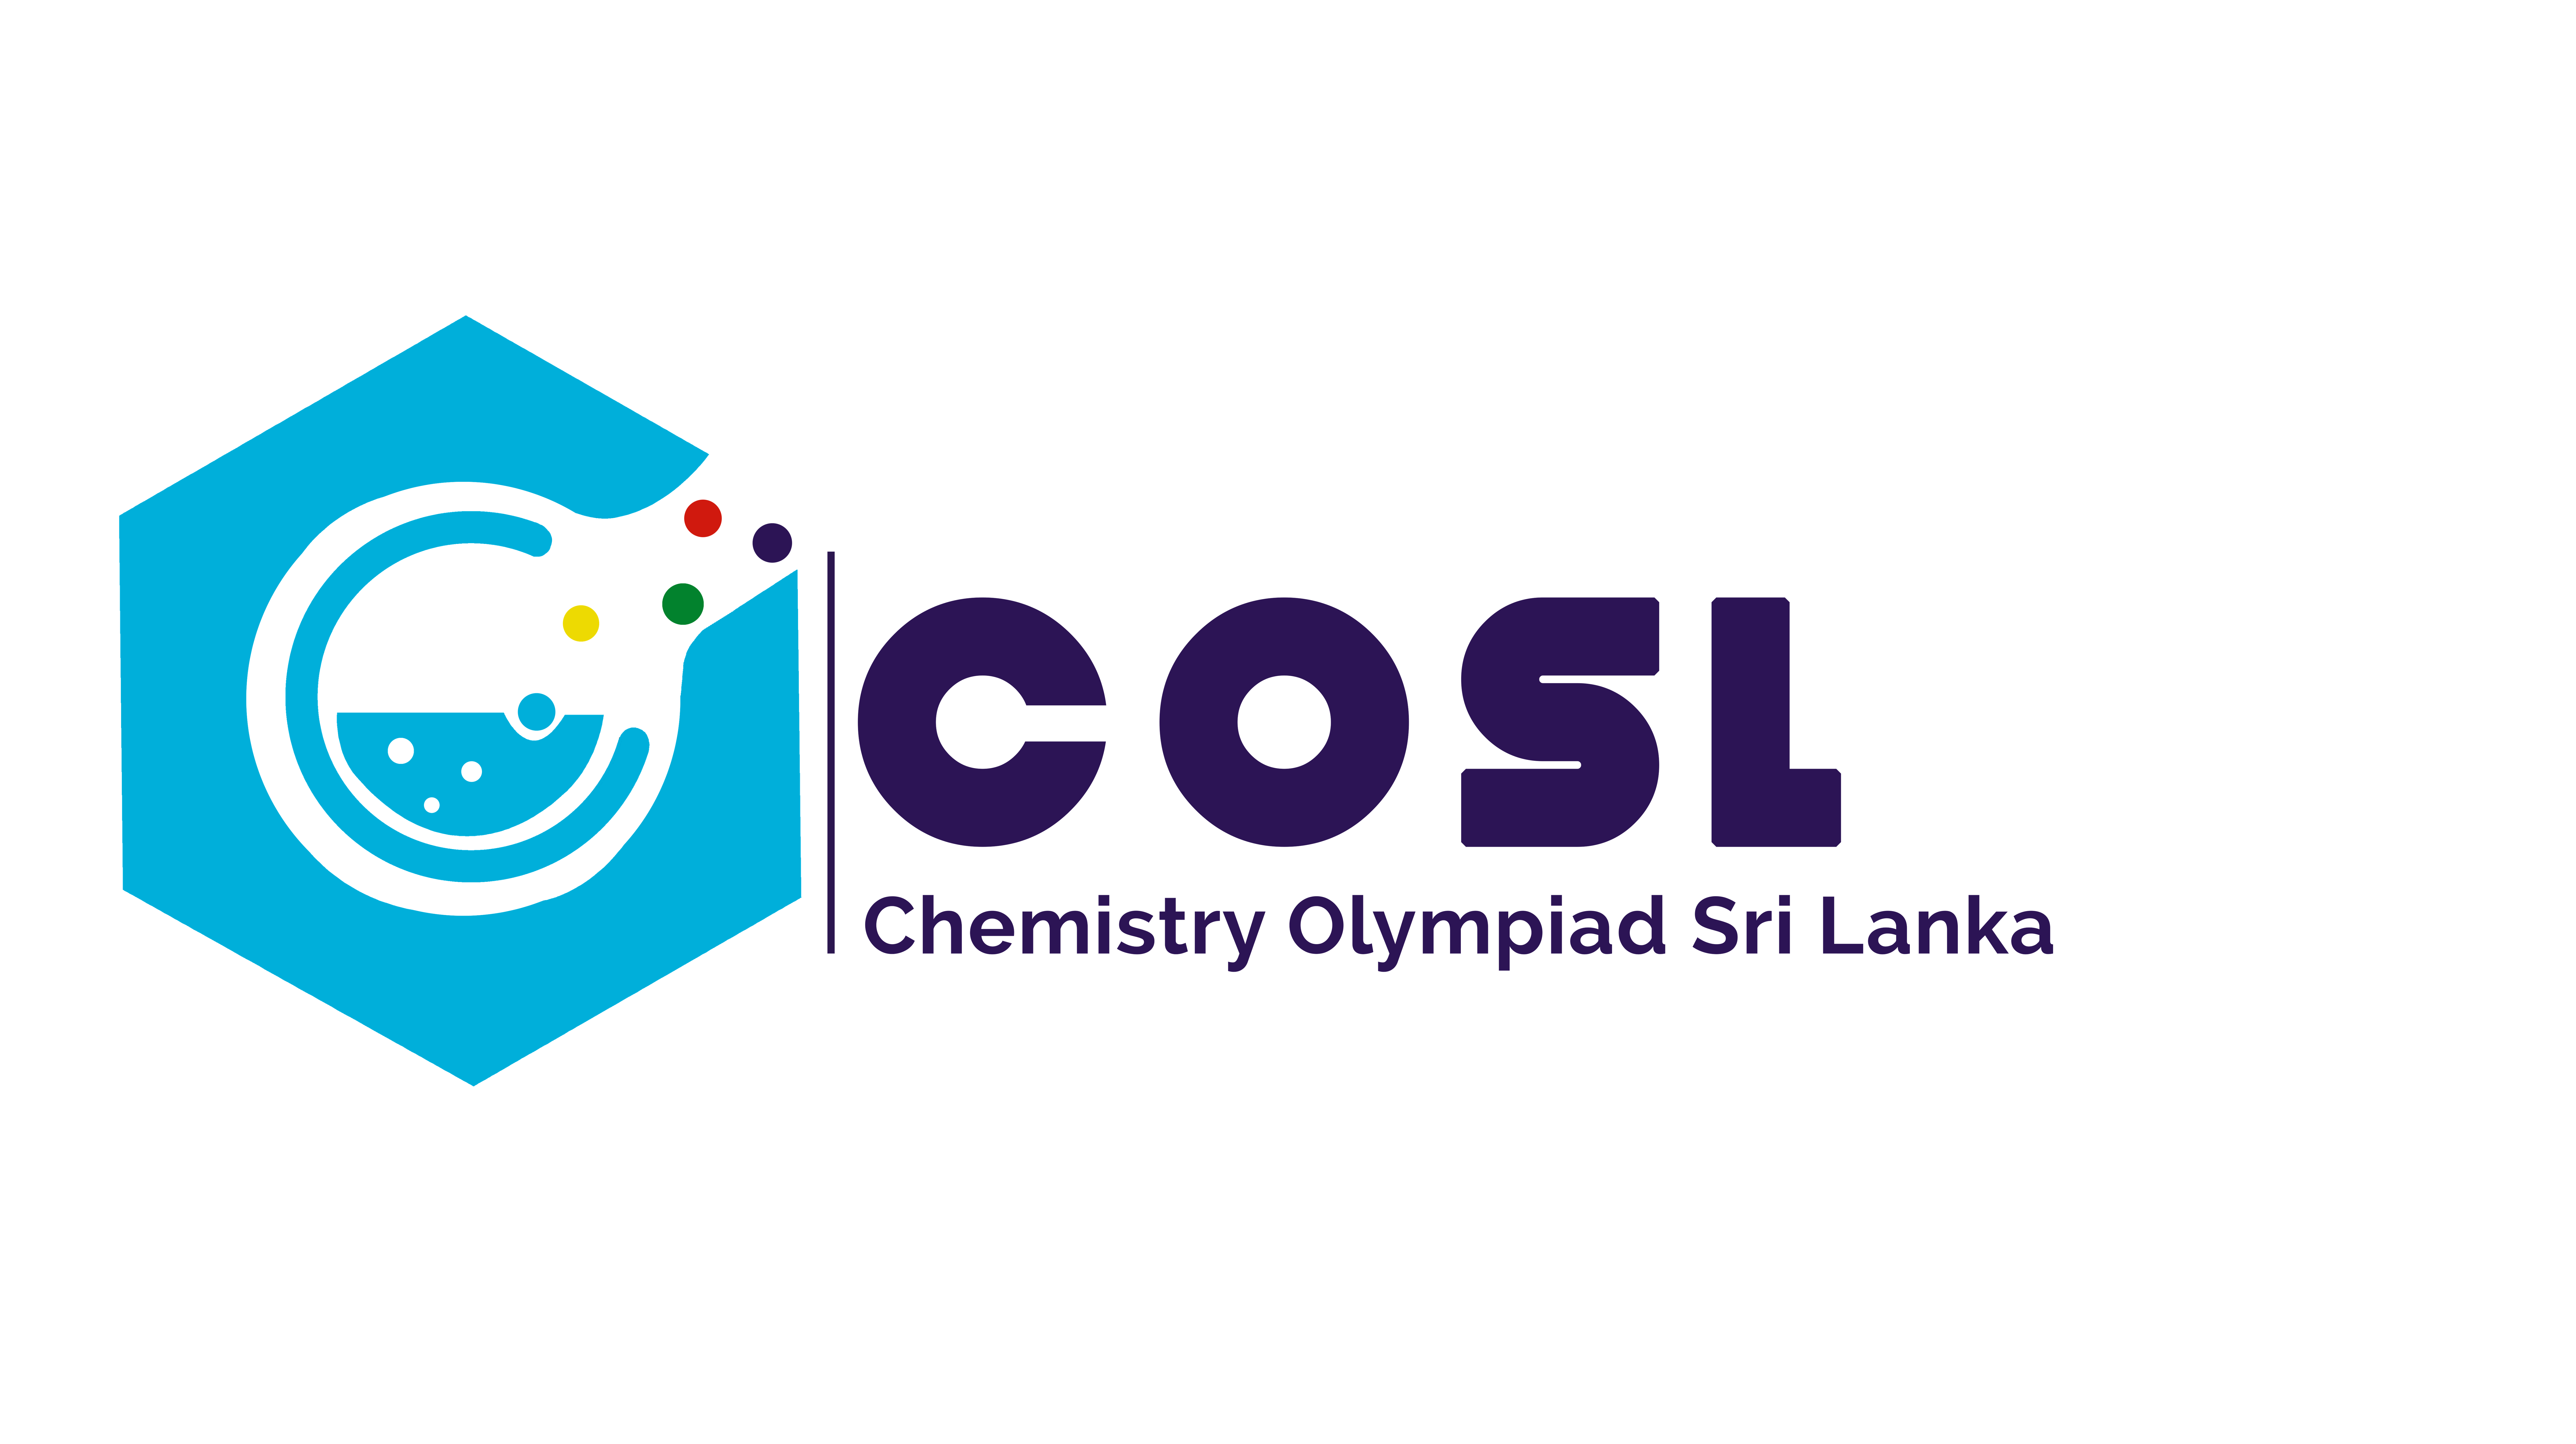 IChem Initiated the Chemistry Olympiad Sri Lanka